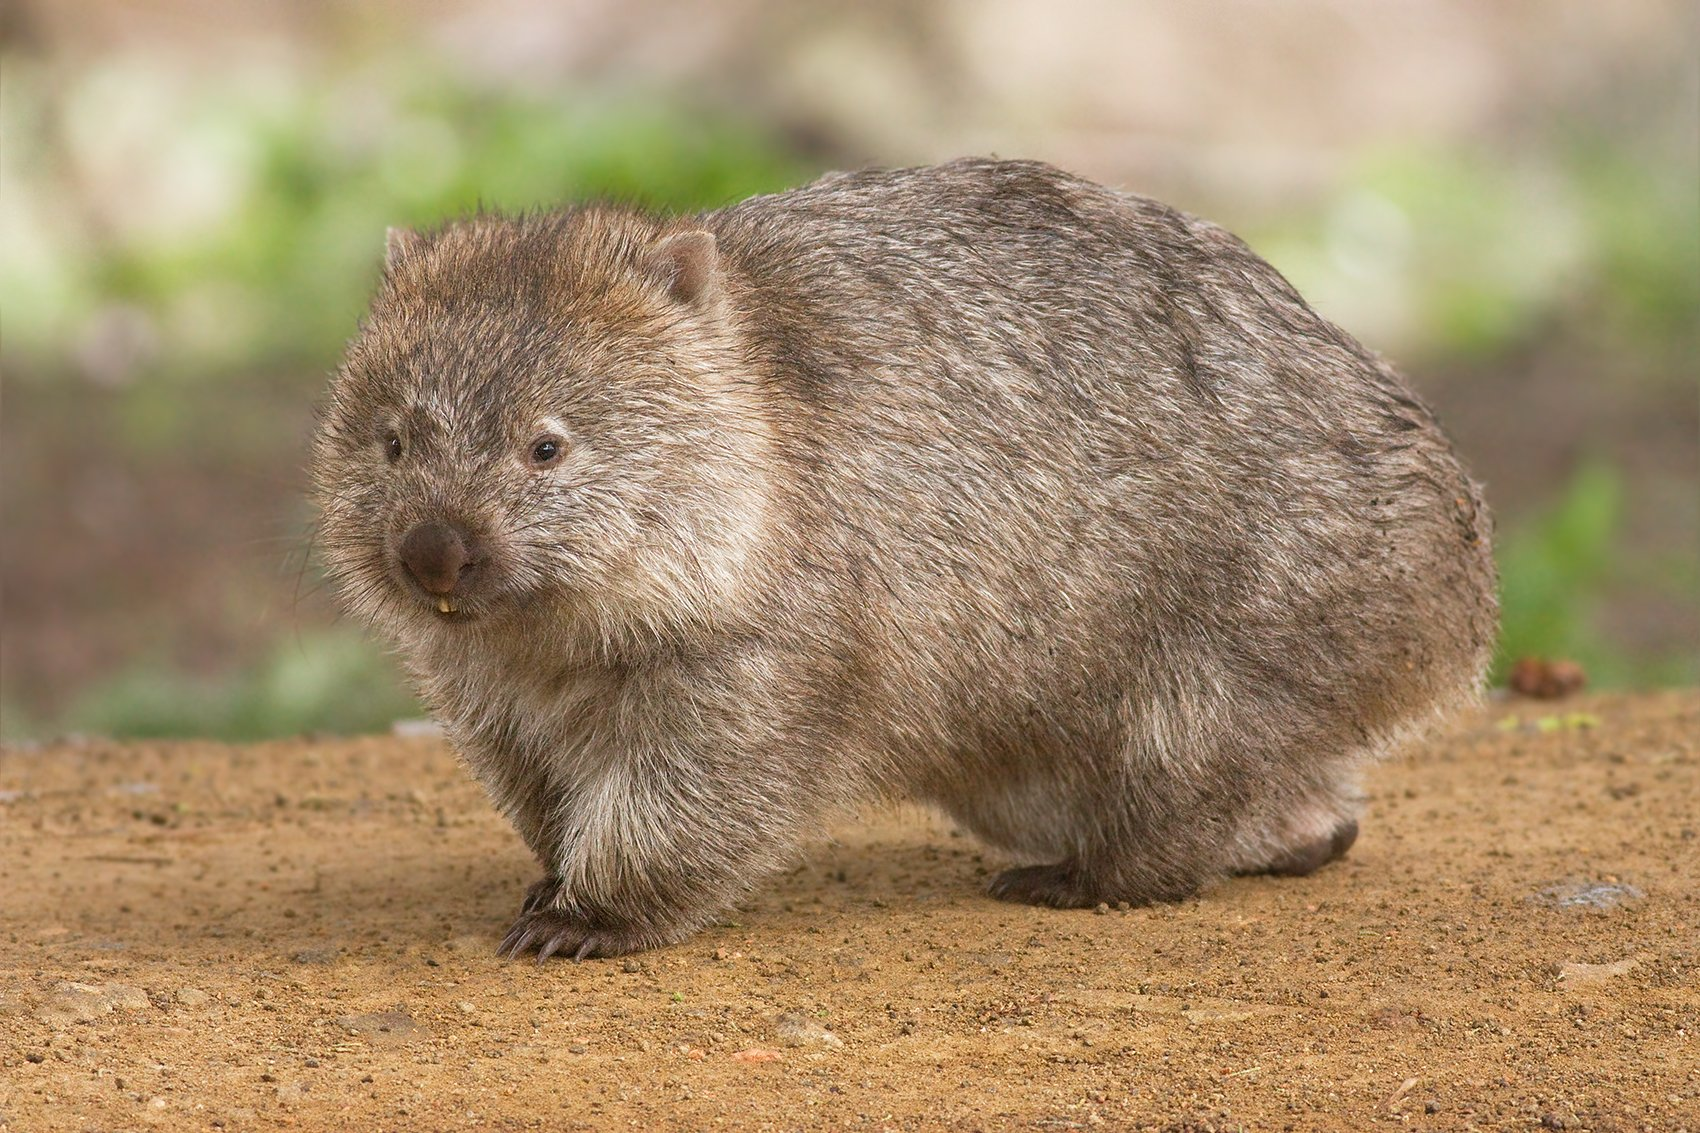 """The common wombat (Vombatus ursinus). (JJ Harrison/Wikipedia/<a href=""""https://theconversation.com/meet-the-giant-wombat-relative-that-scratched-out-a-living-in-australia-25-million-years-ago-141296"""">CC BY-SA 3.0</a>)"""